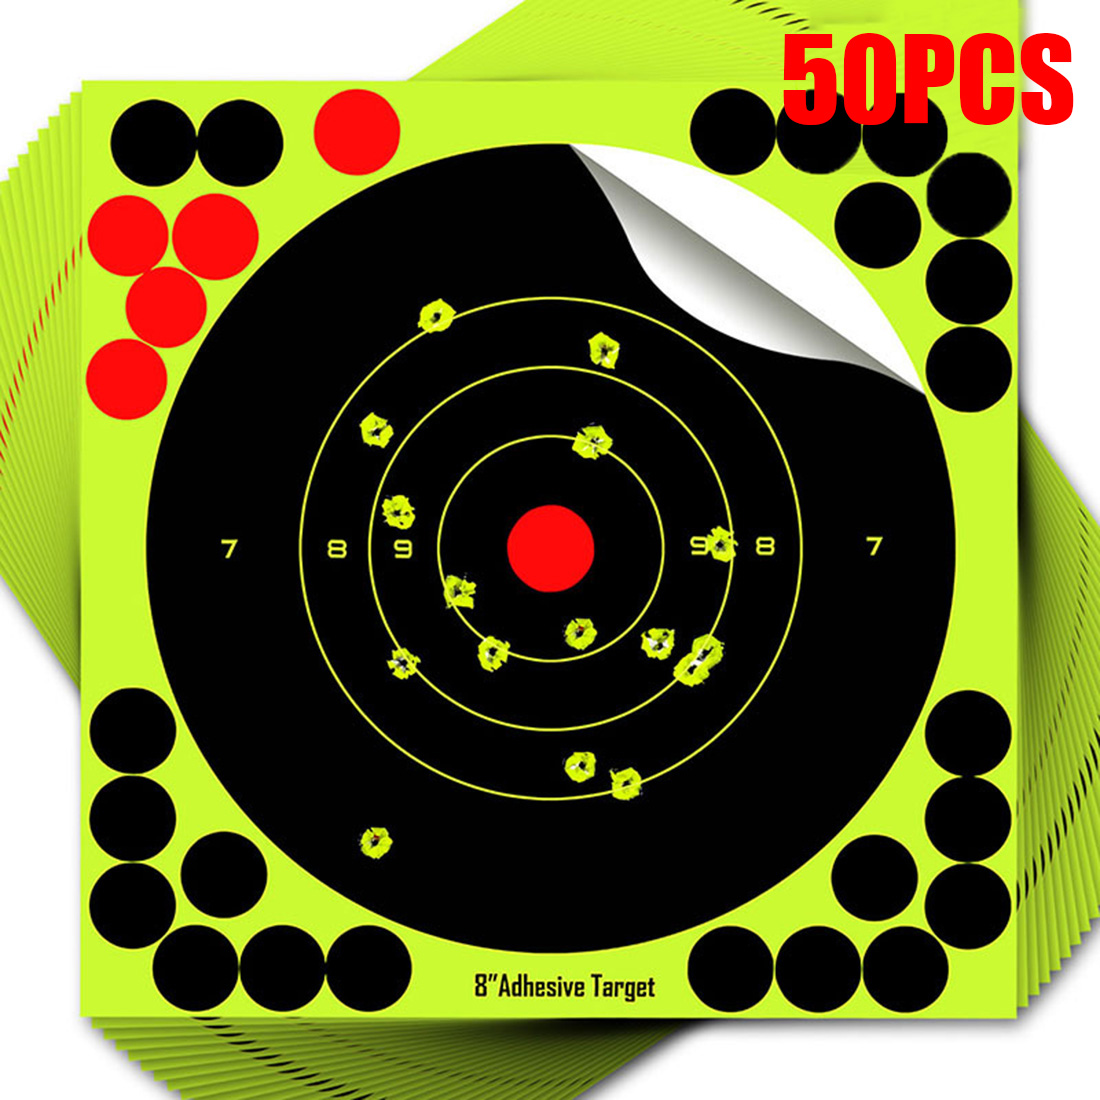 50pcs 8 inch Round Target Paper Practice Reactive Glow Shot Rifle Florescent Removable Target Papers For Shooting Training